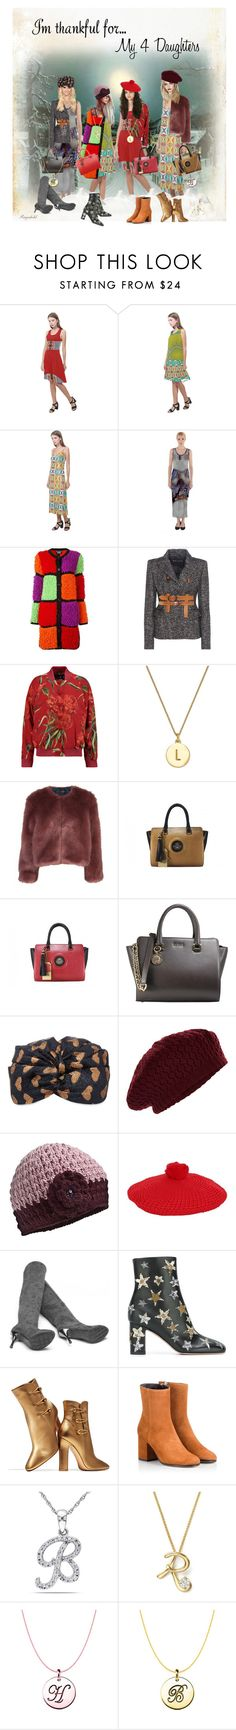 """""""I'm Thankful for my 4 Daughters"""" by ragnh-mjos ❤ liked on Polyvore featuring Boutique Moschino, Fabel, Tom Ford, Dolce&Gabbana, Kate Spade, Stine Goya, Gucci, Accessorize, Nirvanna Designs and Valentino"""